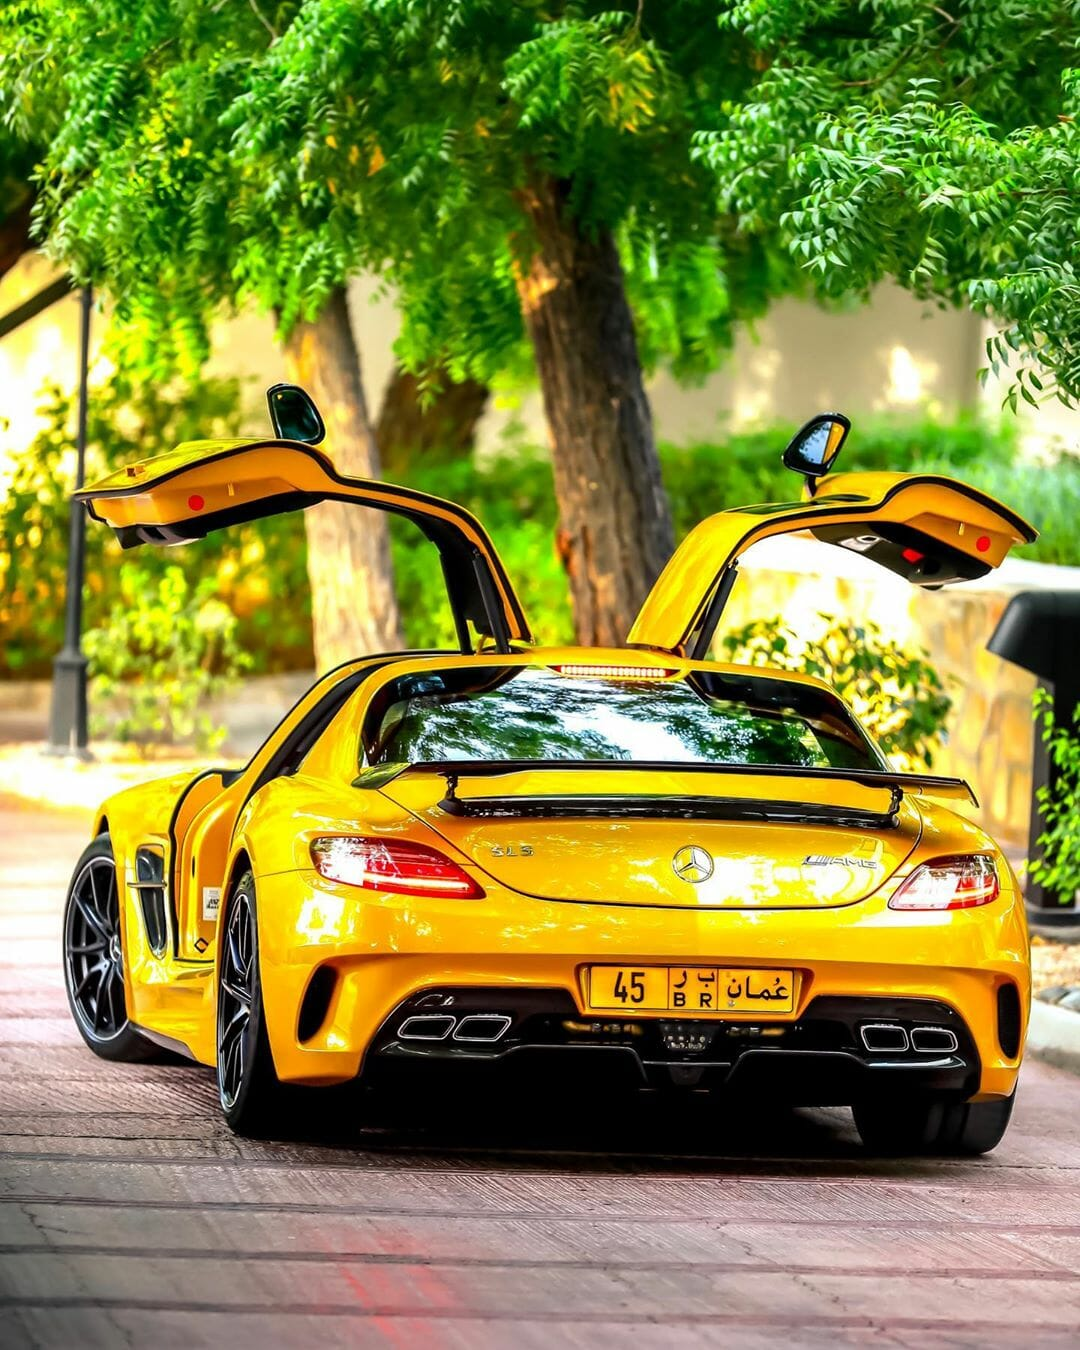 Mercedes-Benz SLS AMG Black Series by @k_cars Picture 3